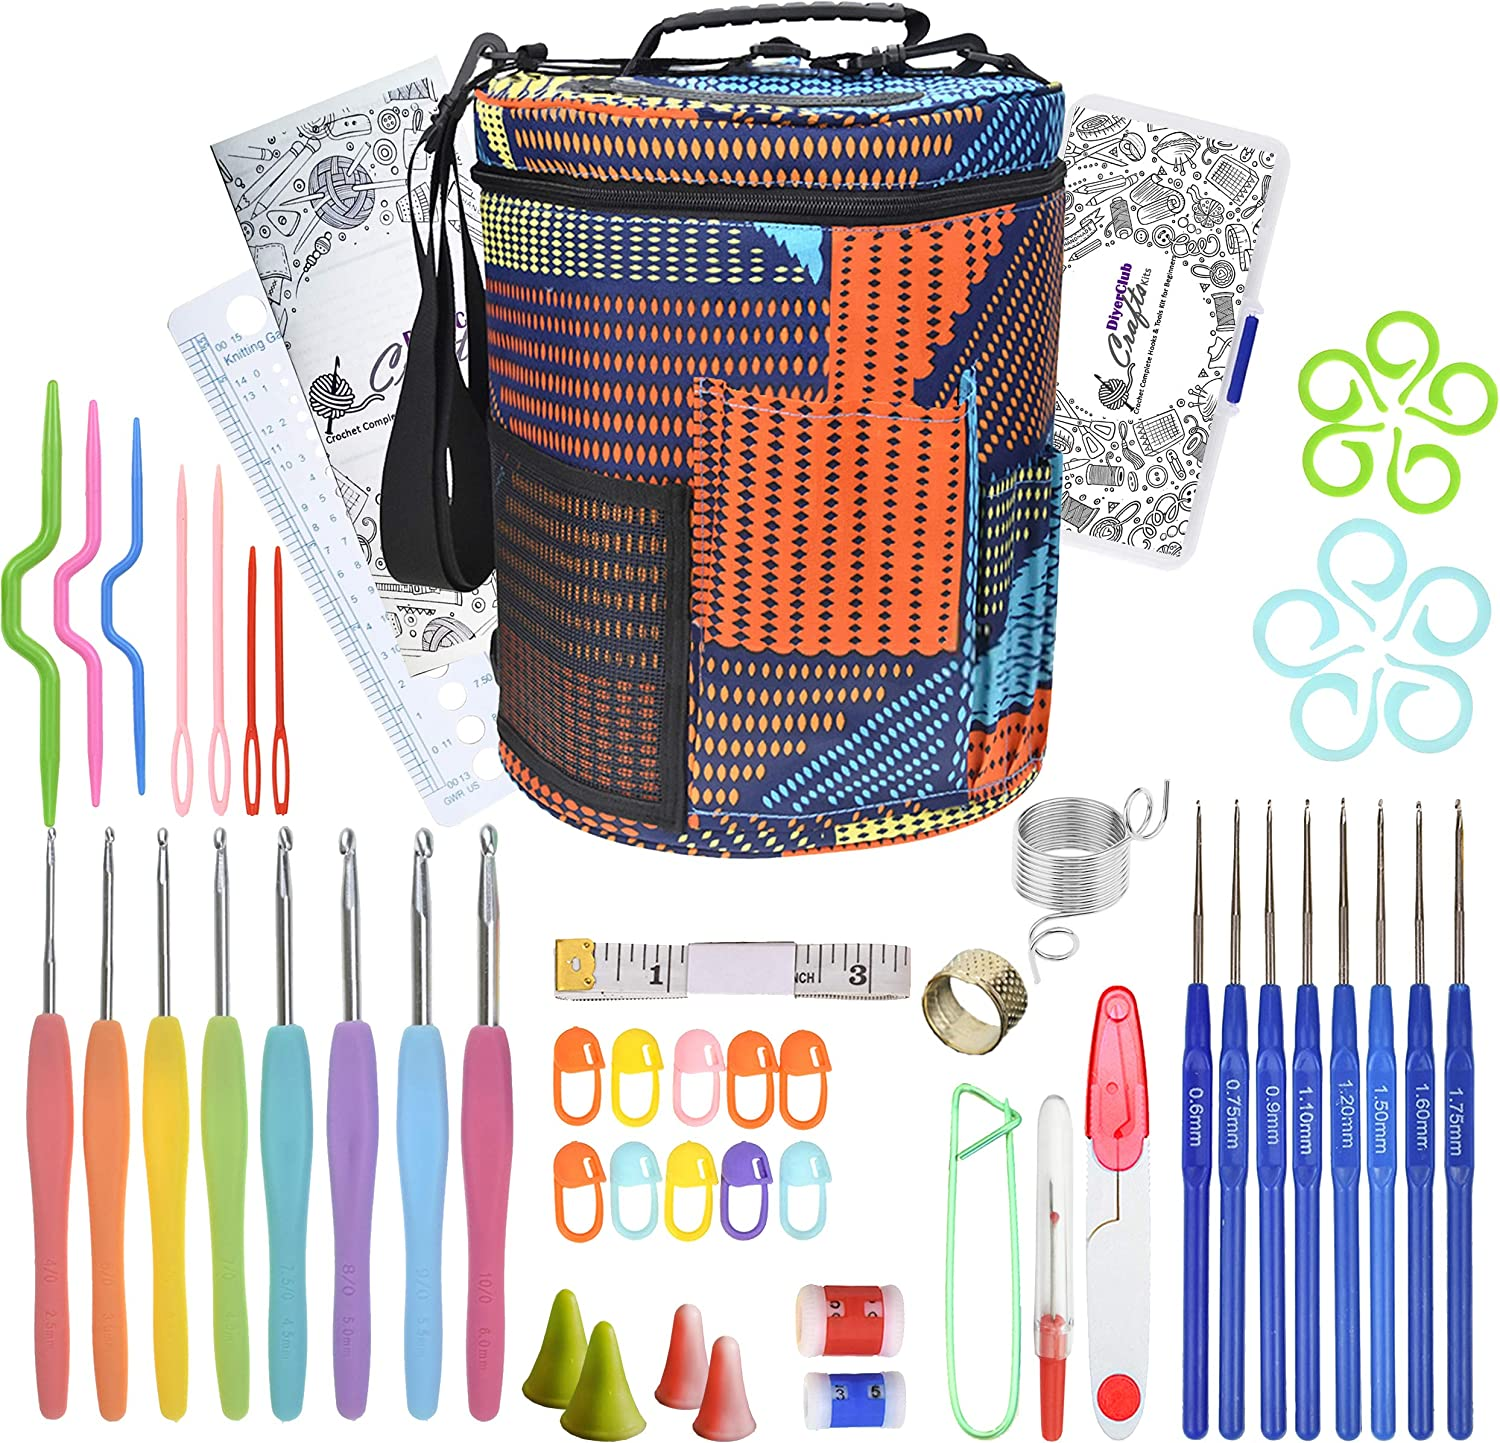 Crochet Hooks Set with Large Knitting - Opening large release sale Yarn Max 67% OFF Storage Bag Complet